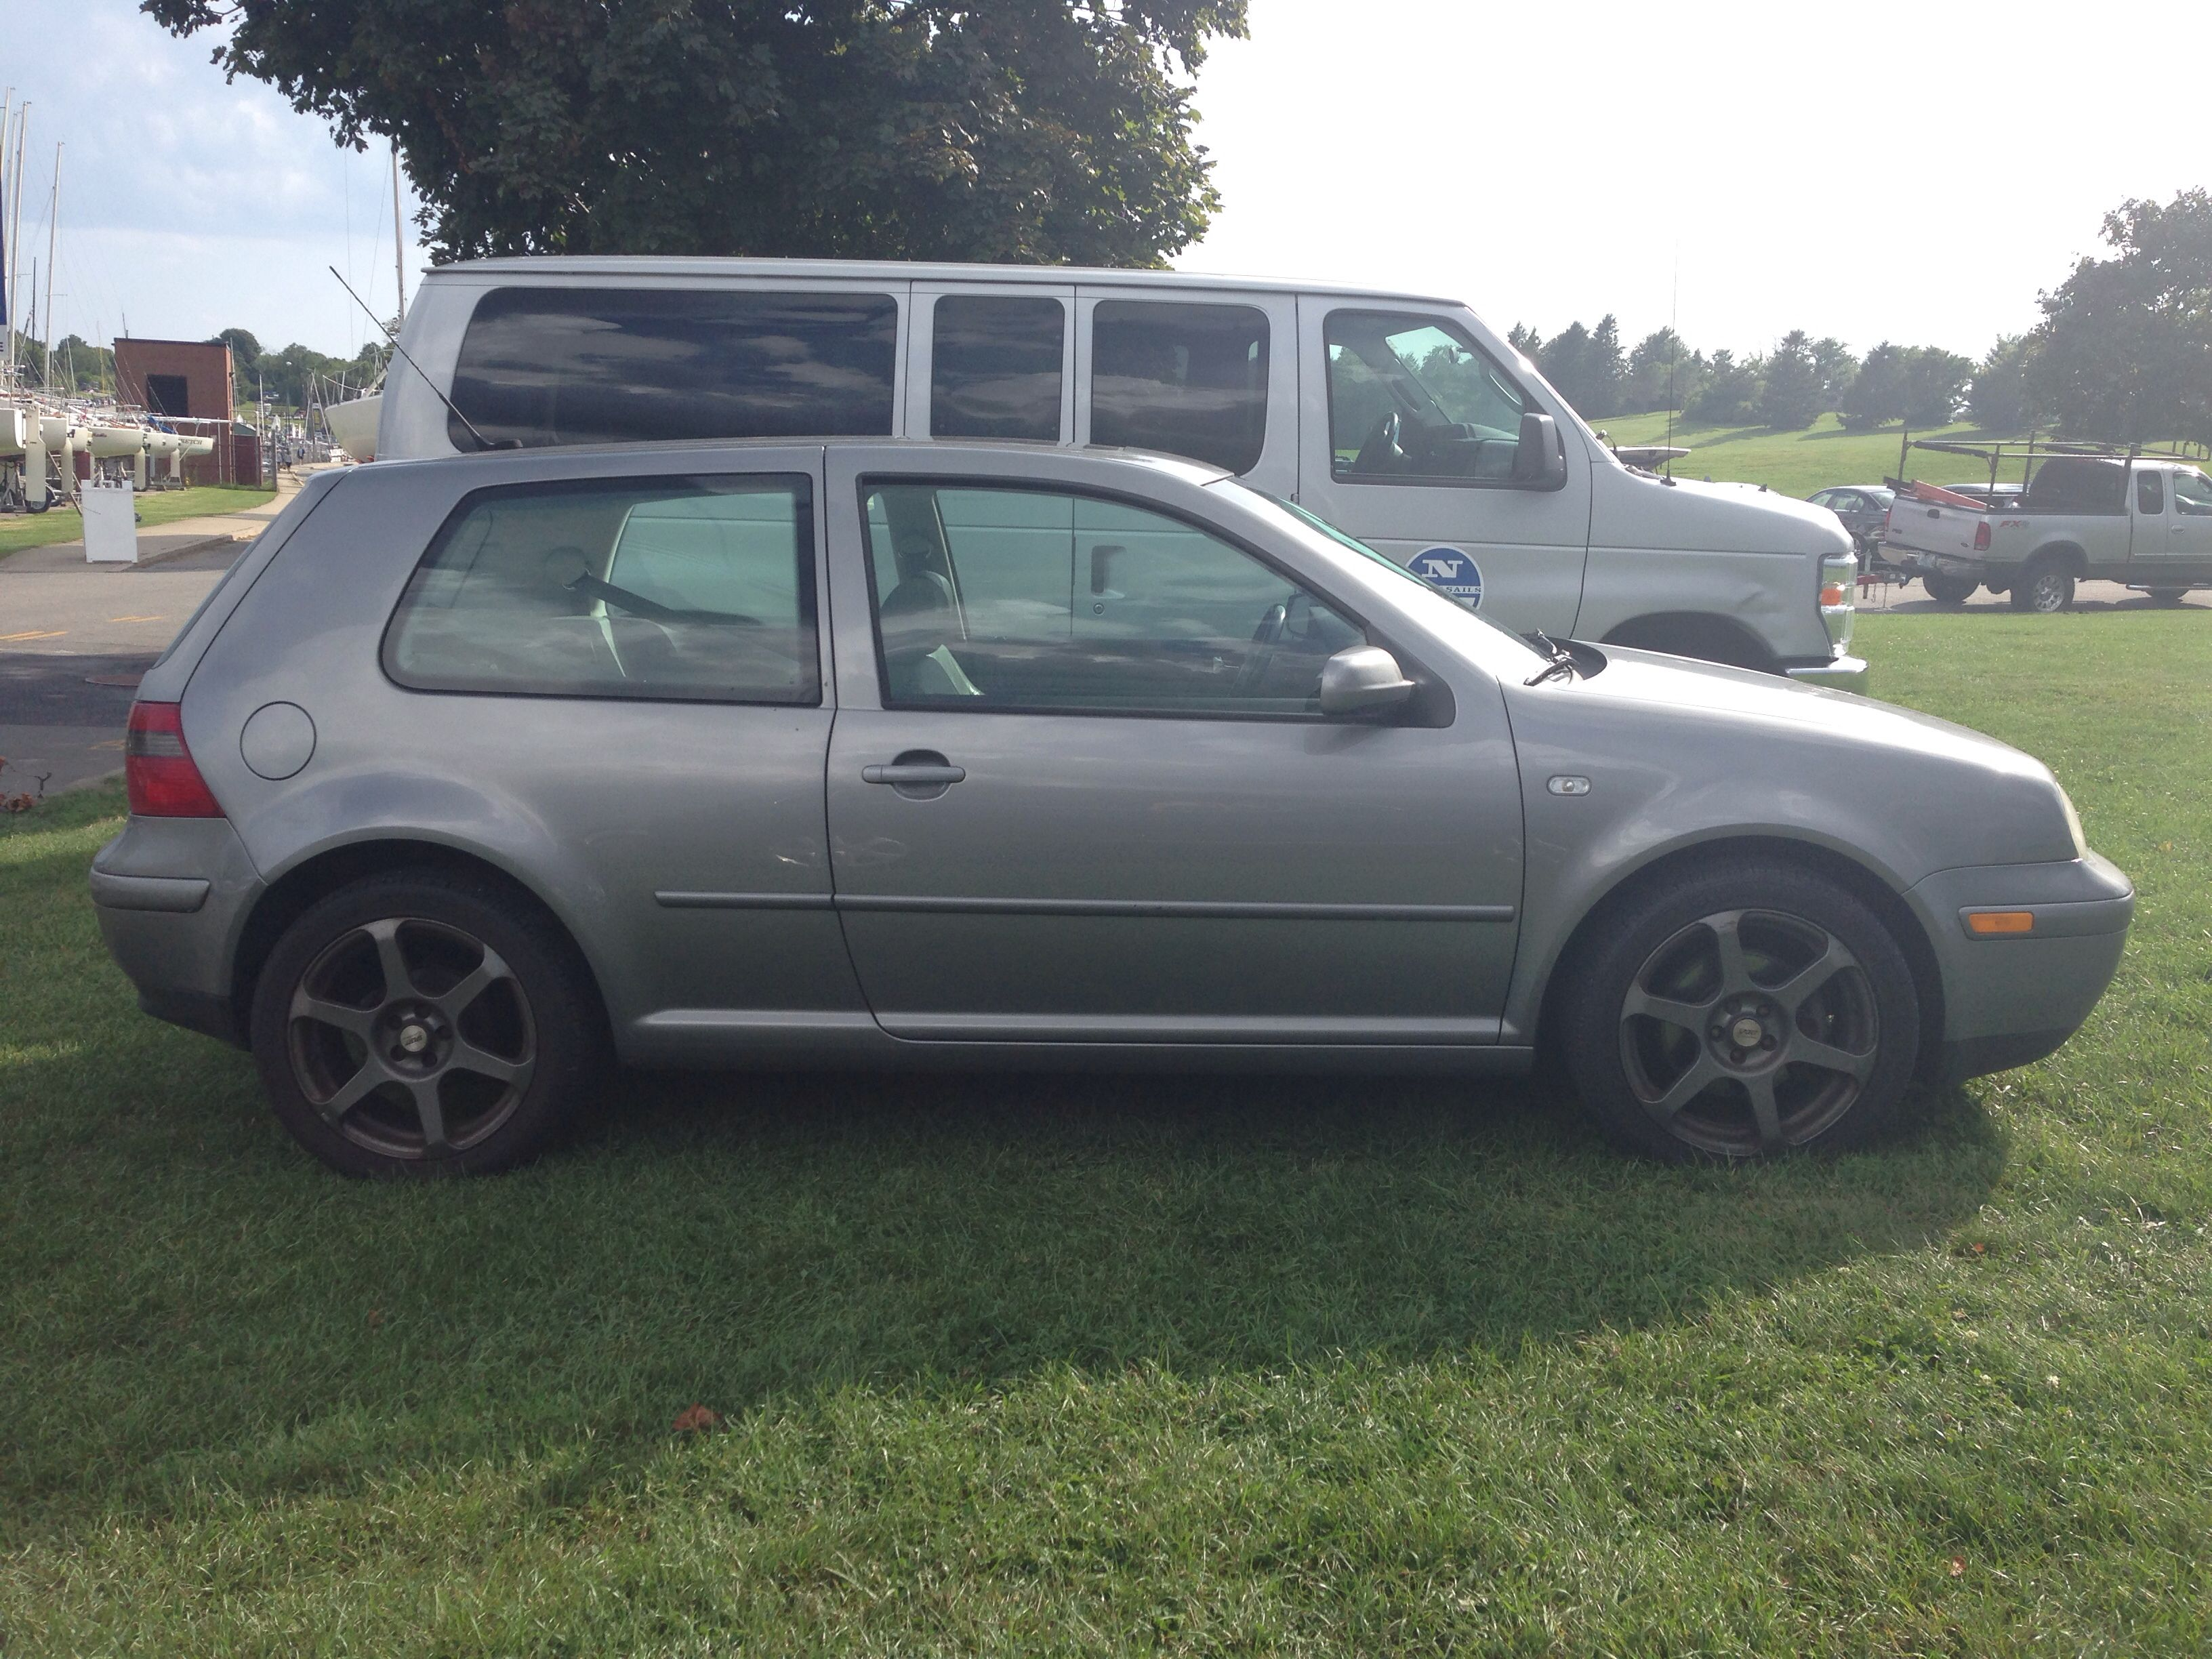 Gorgeous Space Gray Mk4 Golf 2 Door With Gti Taillights And Some Beautiful Plastidipped Alloy Wheels Gti Tail Light Alloy Wheel